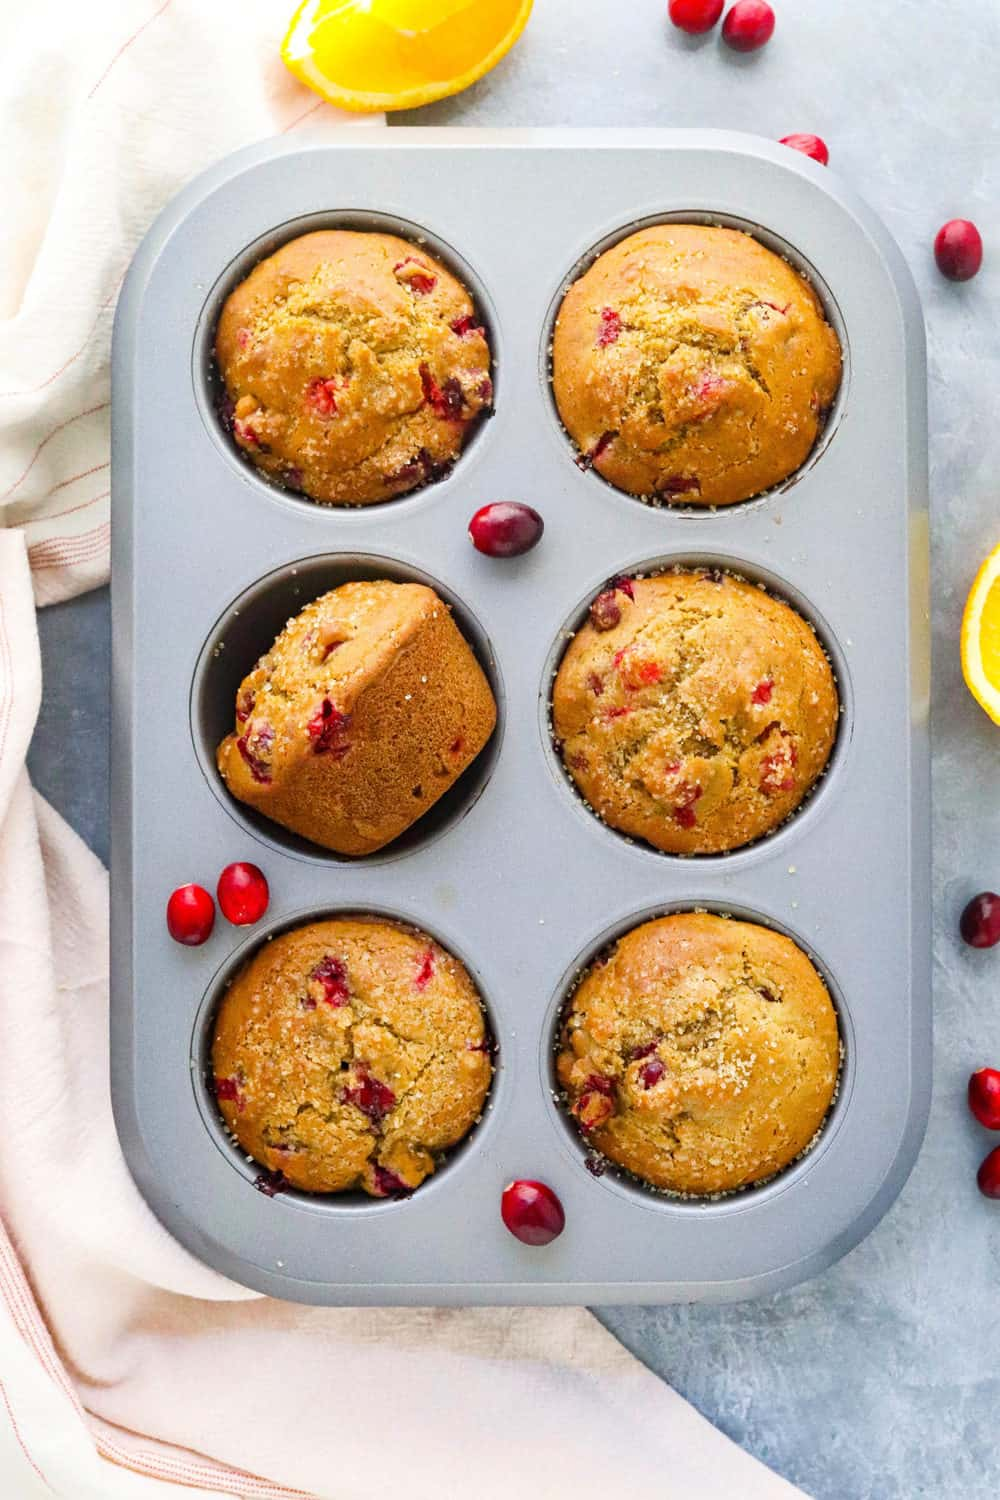 muffin pan with baked cranberry muffins in it.